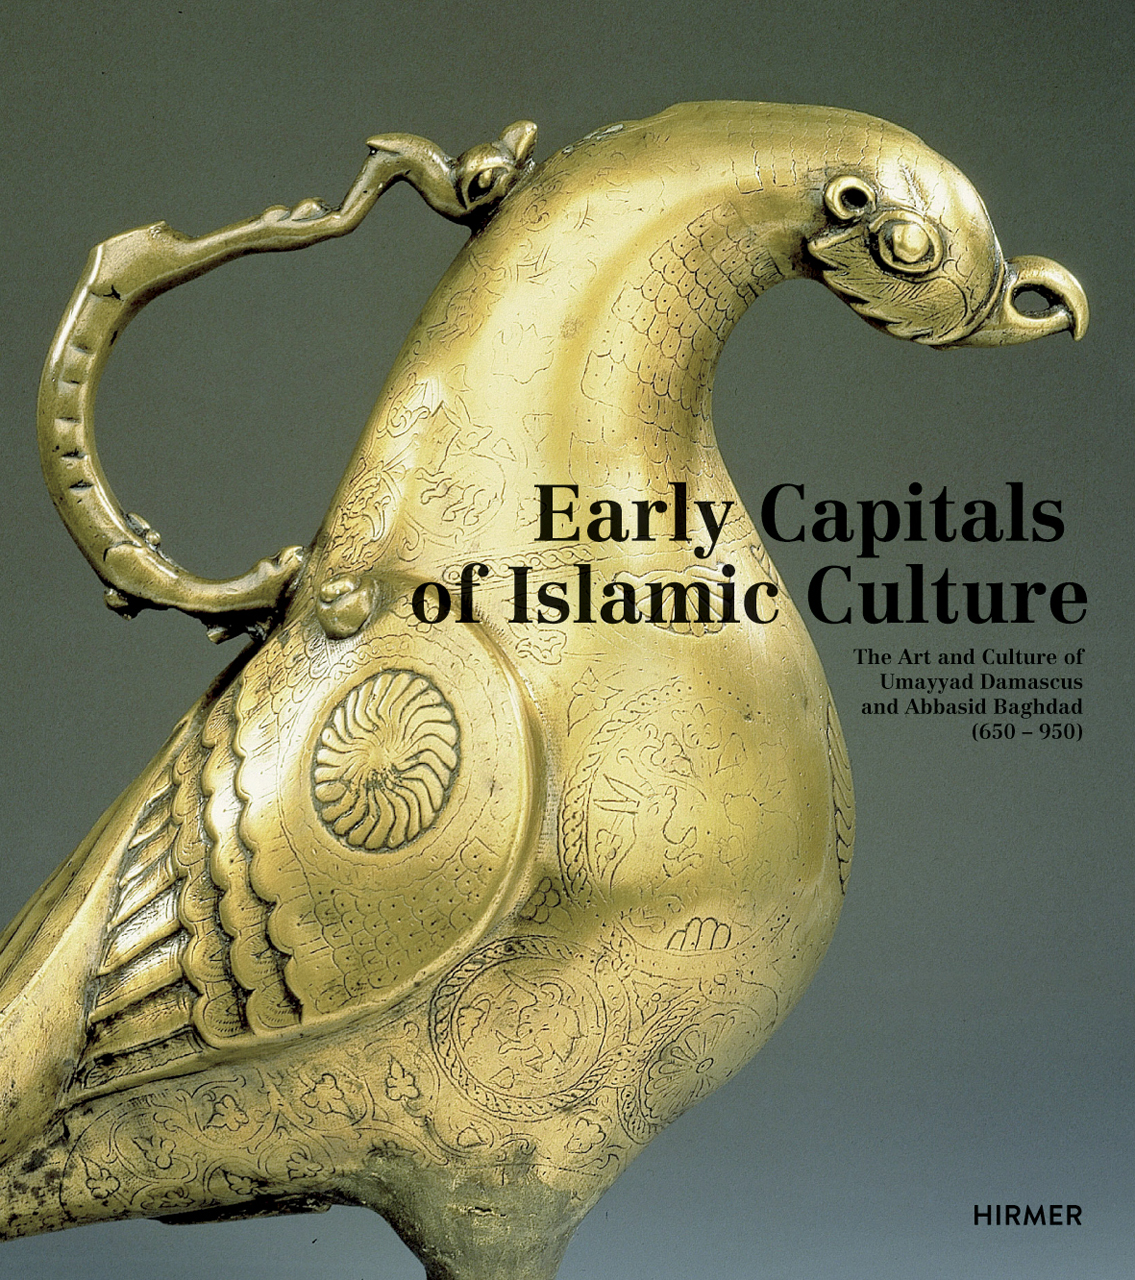 Early Capitals of Islamic Culture